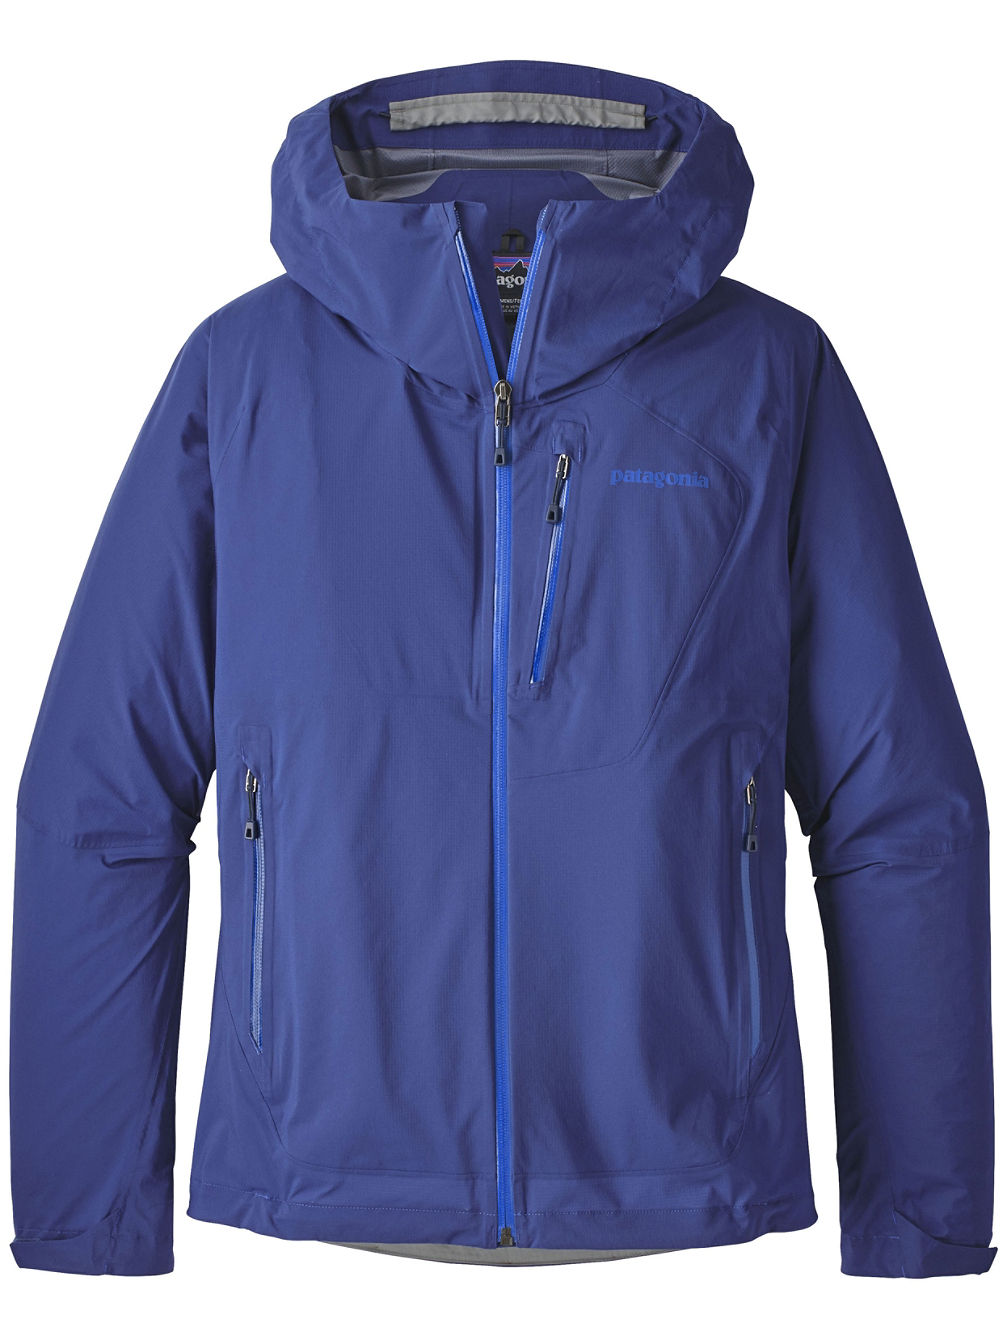 Stretch Rainshadow Jacket